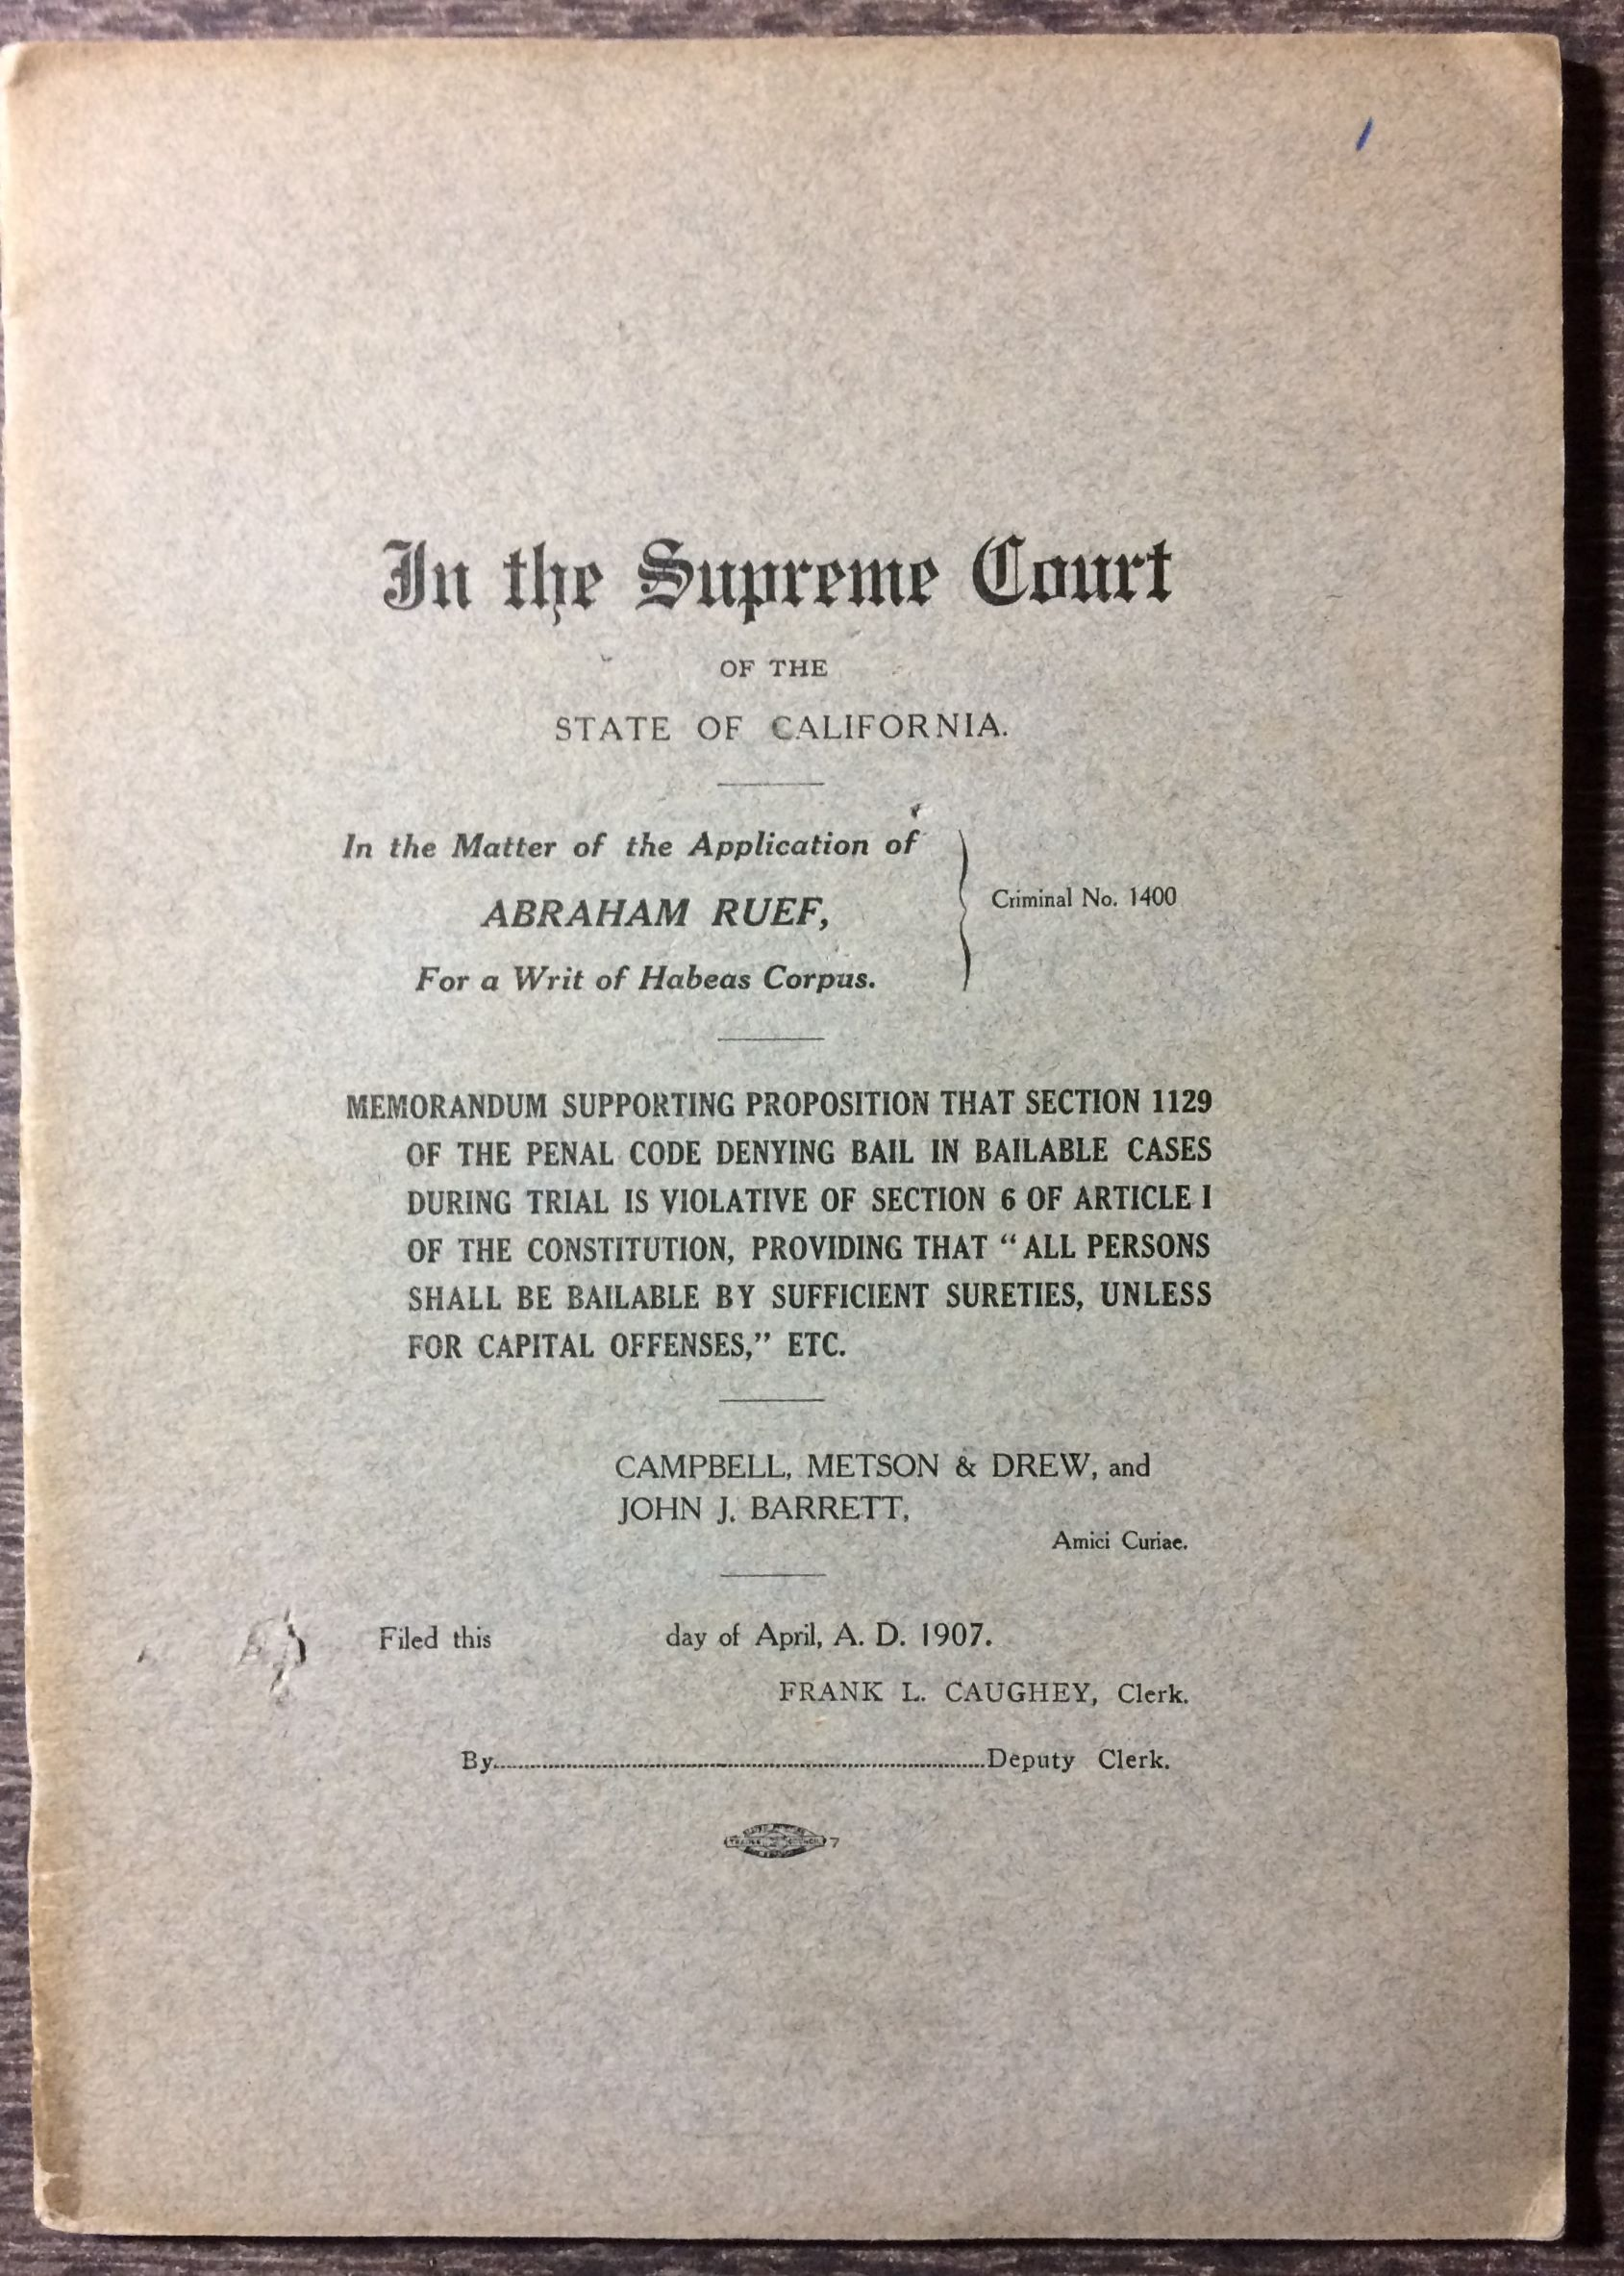 "Image for [Cover Title] In the Supreme Court, State of California, in the Matter of the Application of Abraham Ruef for a writ of Habeas Corpus, criminal no. 1400 : memorandum supporting proposition that section 1129 of the penal code denying bail in bailable cases during trial is violative of section 6 of article 1 of the constitution, providing that ""All persons shall be bailable by sufficient sureties, unless for capital offenses"", etc.  Campbell, Metson & Drew, and John J. Barrett, Amici Curiae."